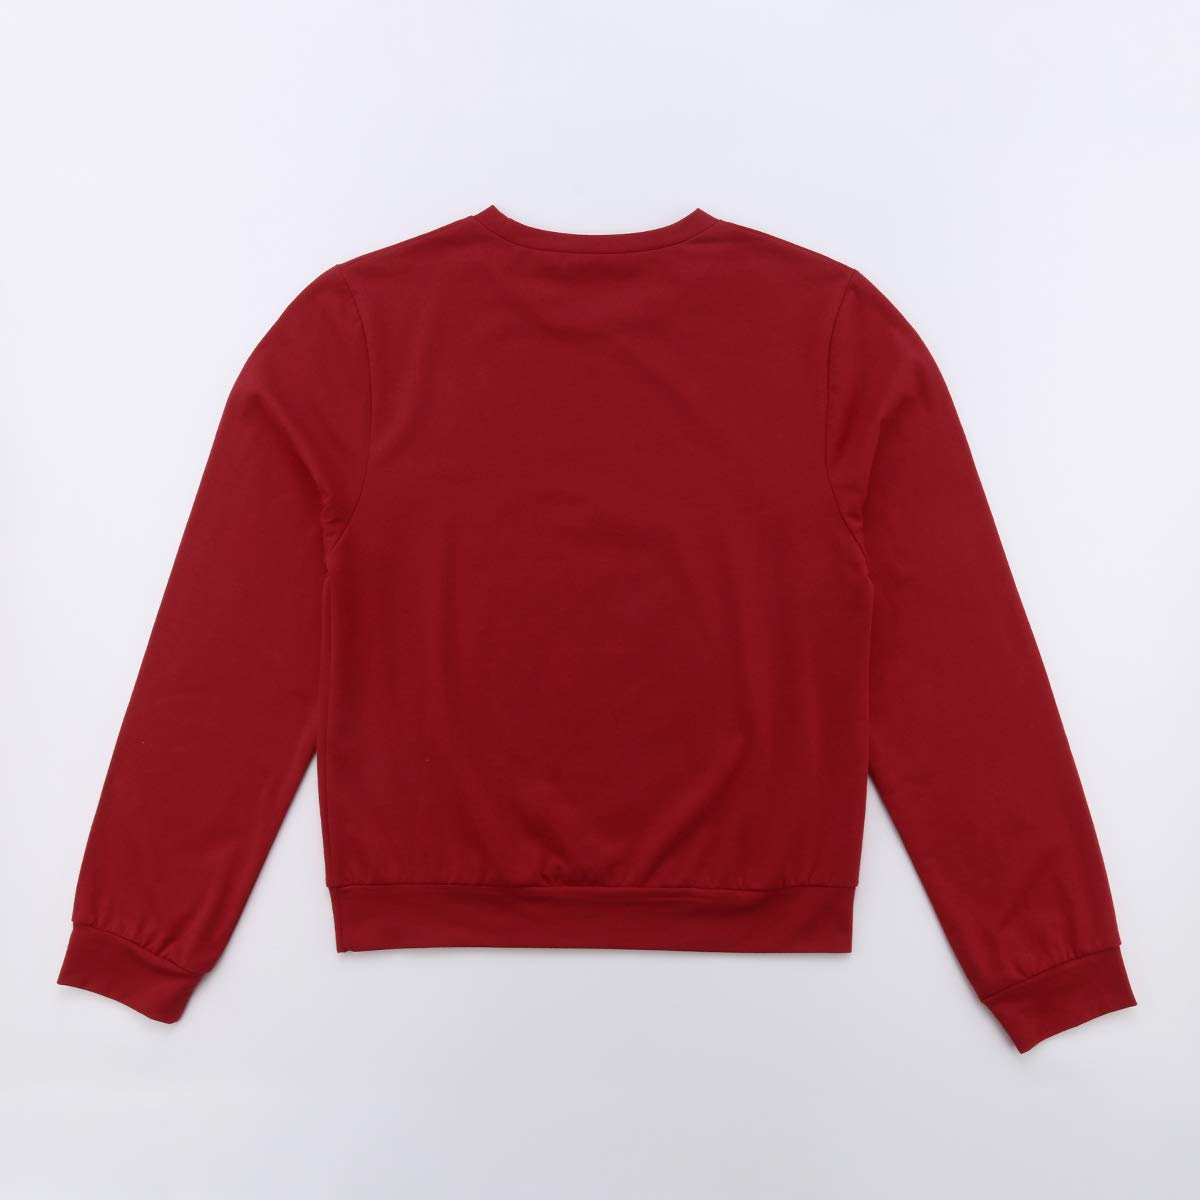 Mens Xmas Pullover Sweatshirt for Mum Daddy Men Boys Girls Family Matching Outfits